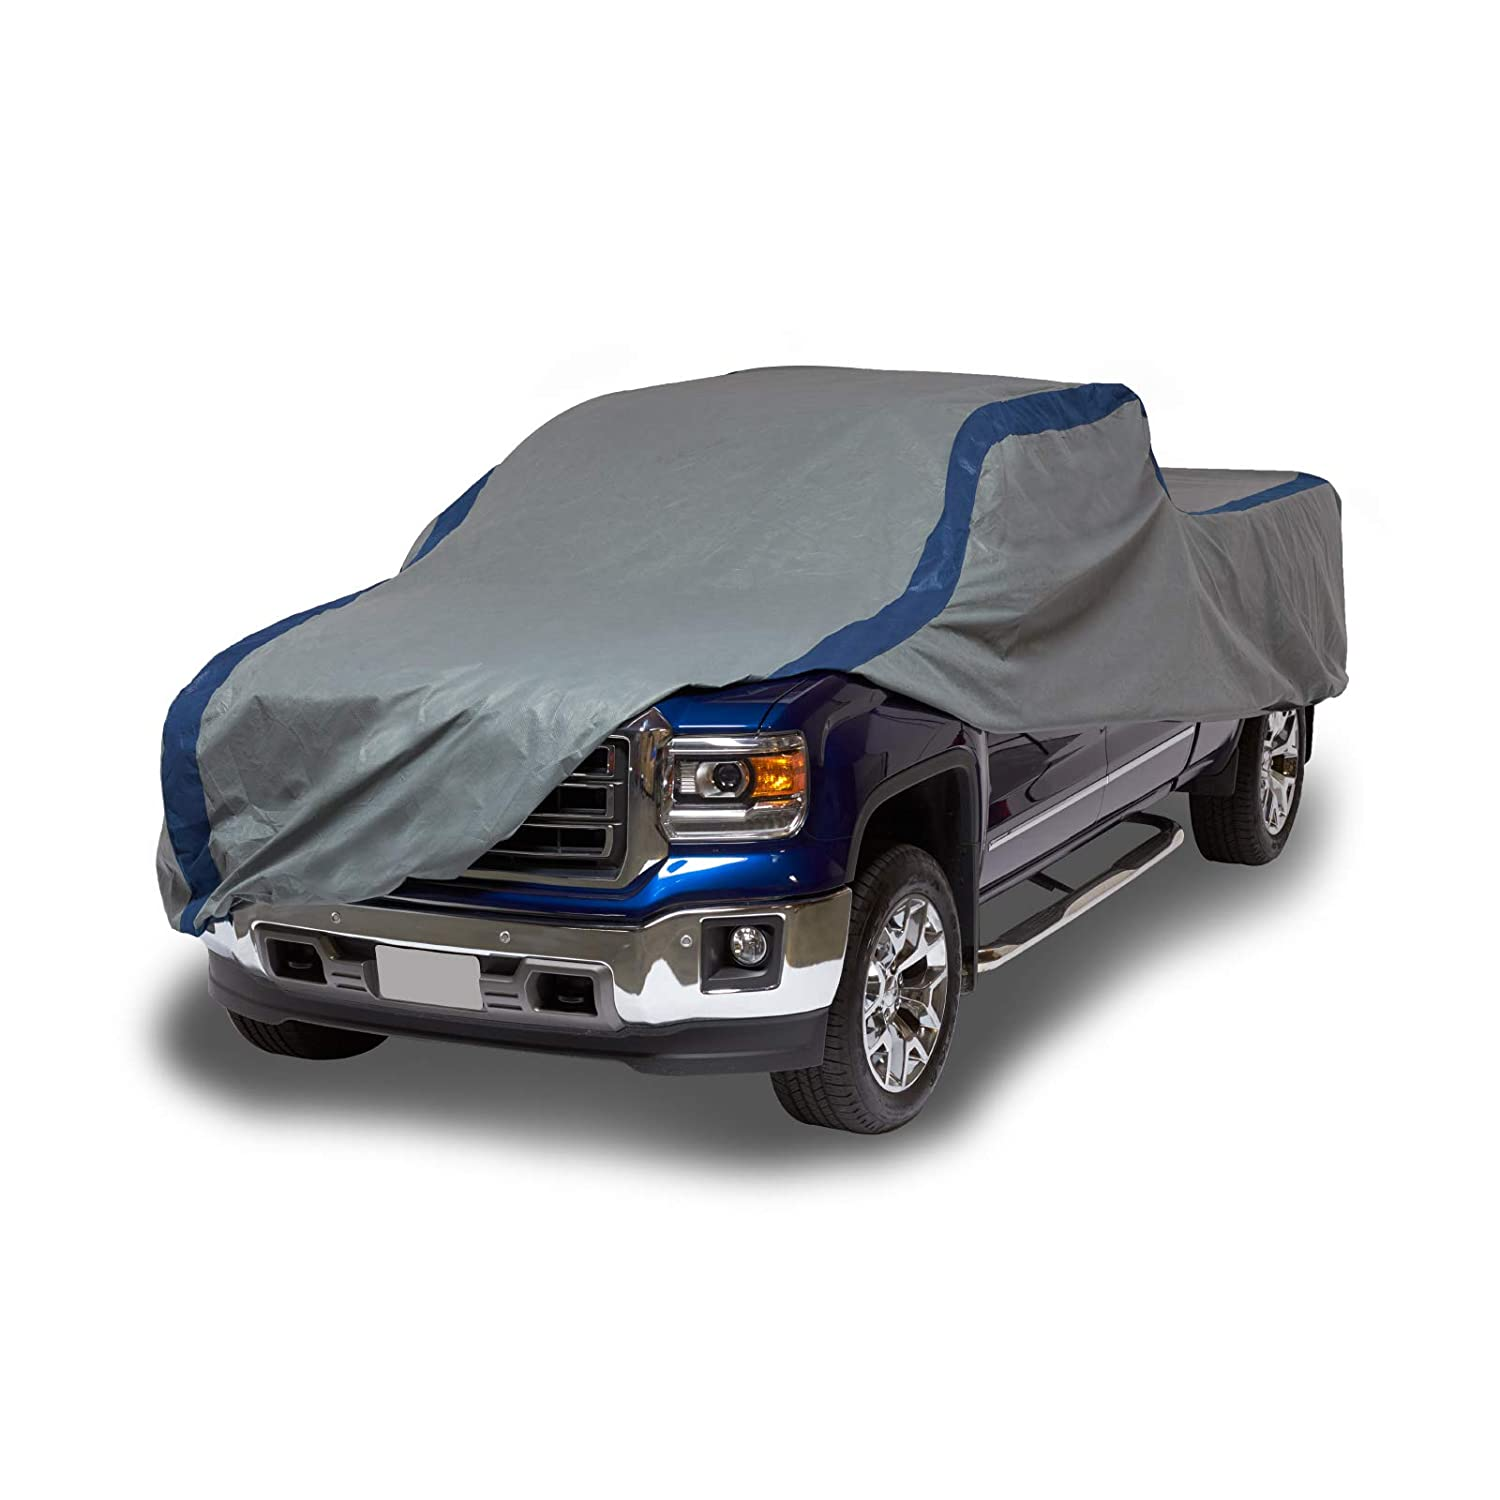 Duck Covers Weather Defender Outdoor Pickup Truck Cover, Limited 4 Year Warranty,  Fits Compact Pickup Trucks with Standard Cab up to 16 feet 5 inches A3T232